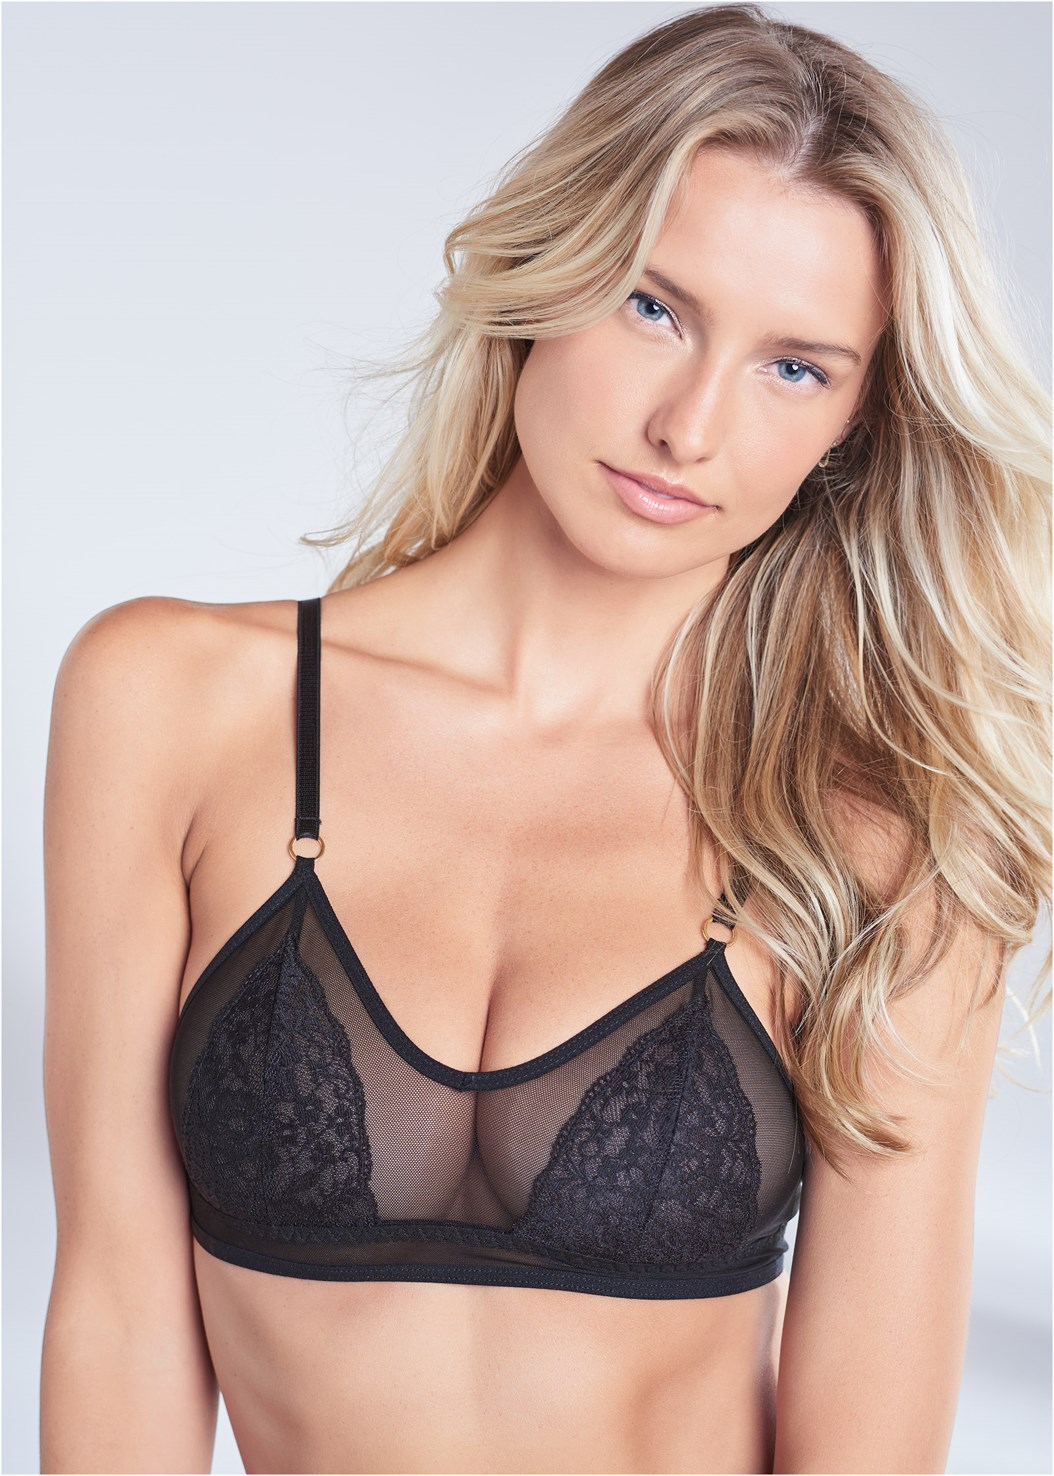 Triangle Bralette,Lace Thong 3Pk